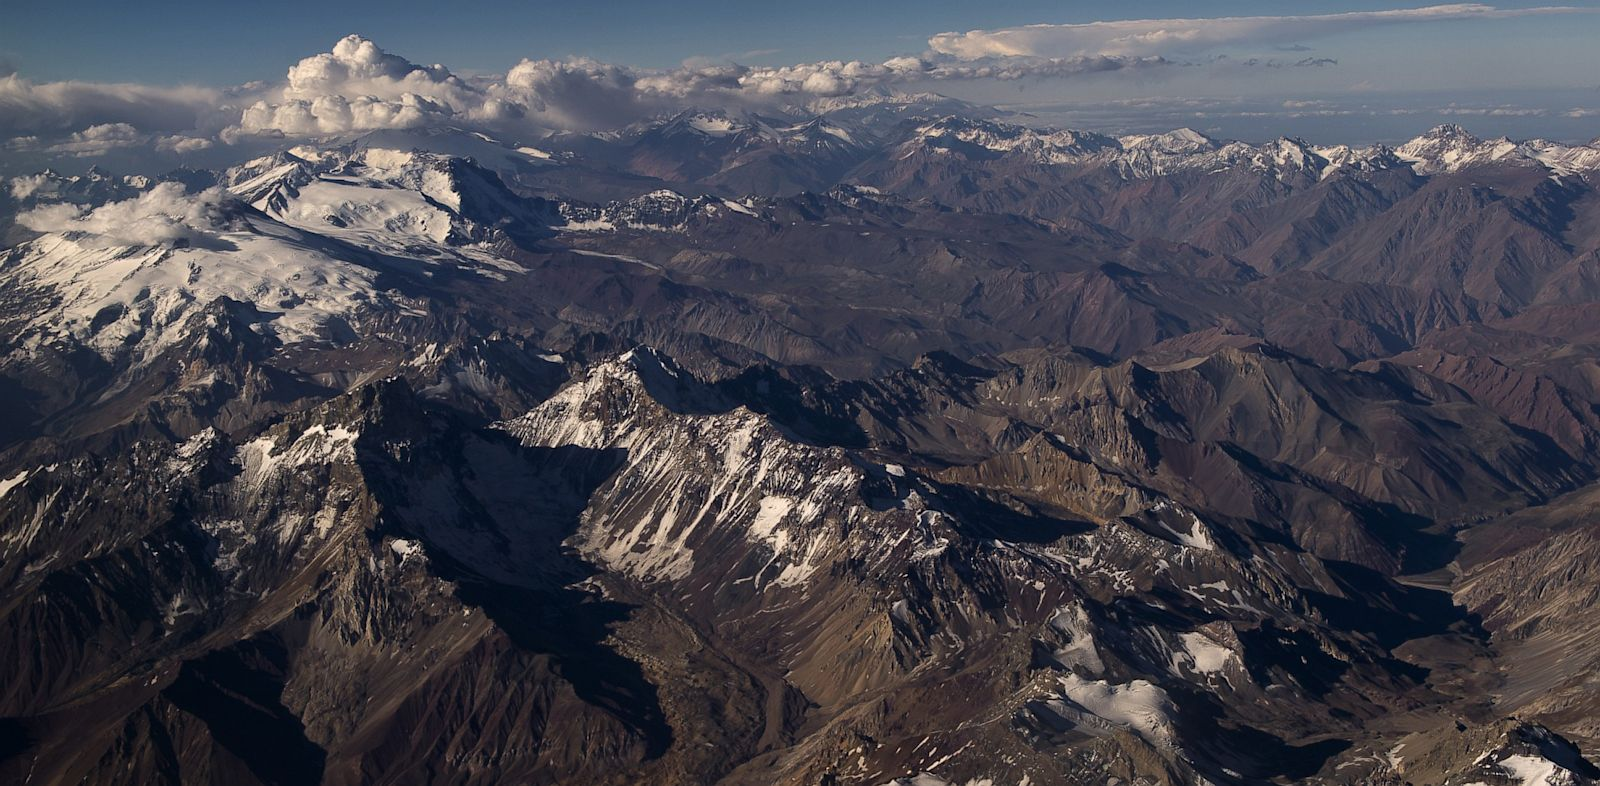 PHOTO: Aerial view of the Andes mountain range, near the border between Chile and Argentina, on January 29, 2013